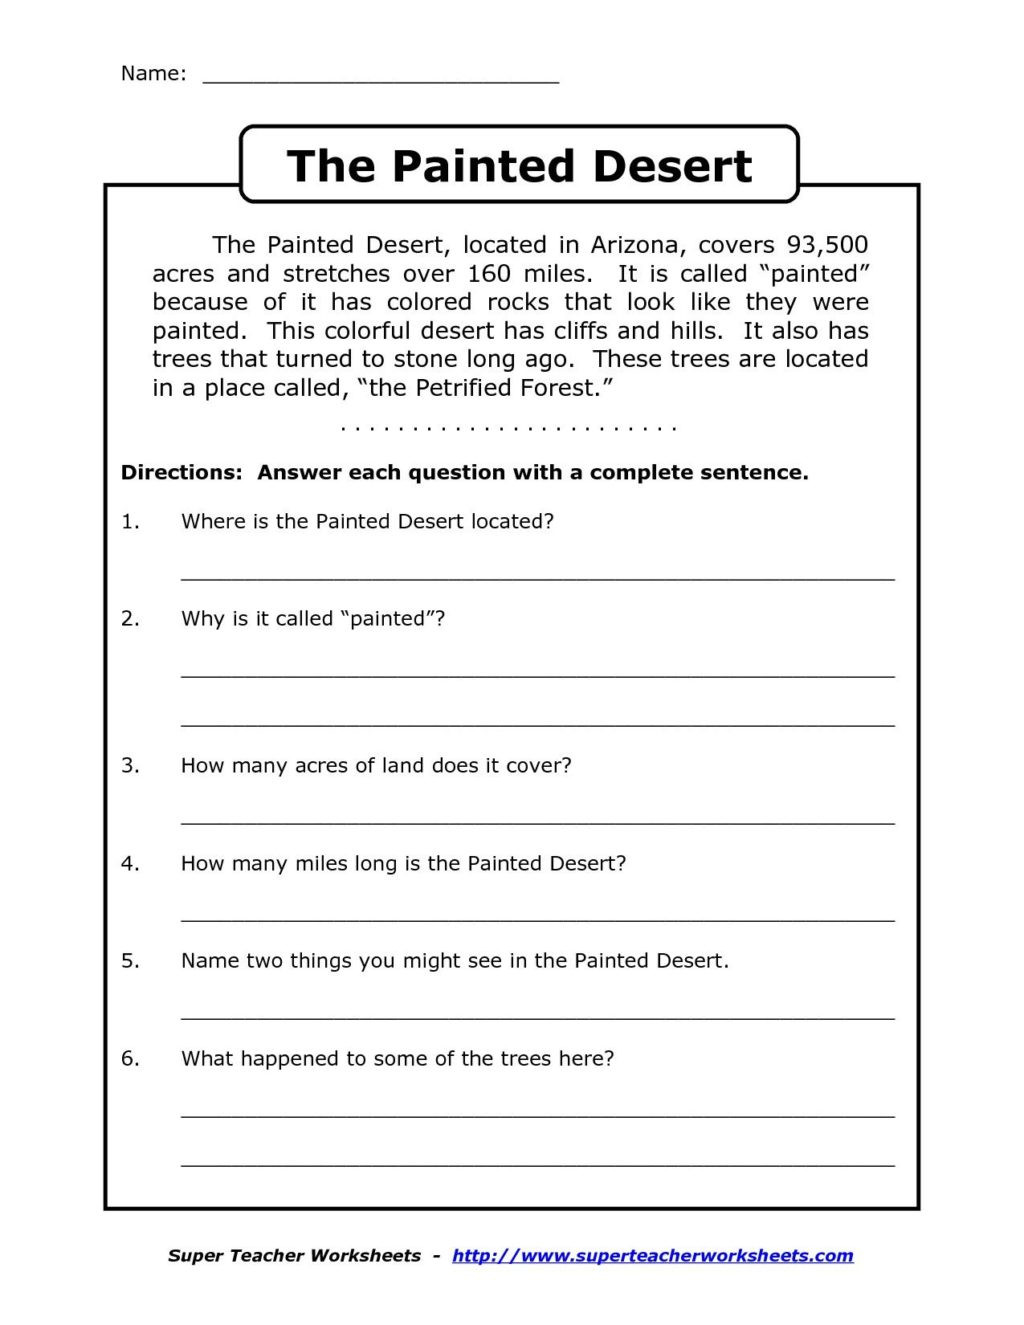 Complete Sentences Worksheet 1st Grade Worksheet Worksheet Prehension for 1st Grade Y2p3 the